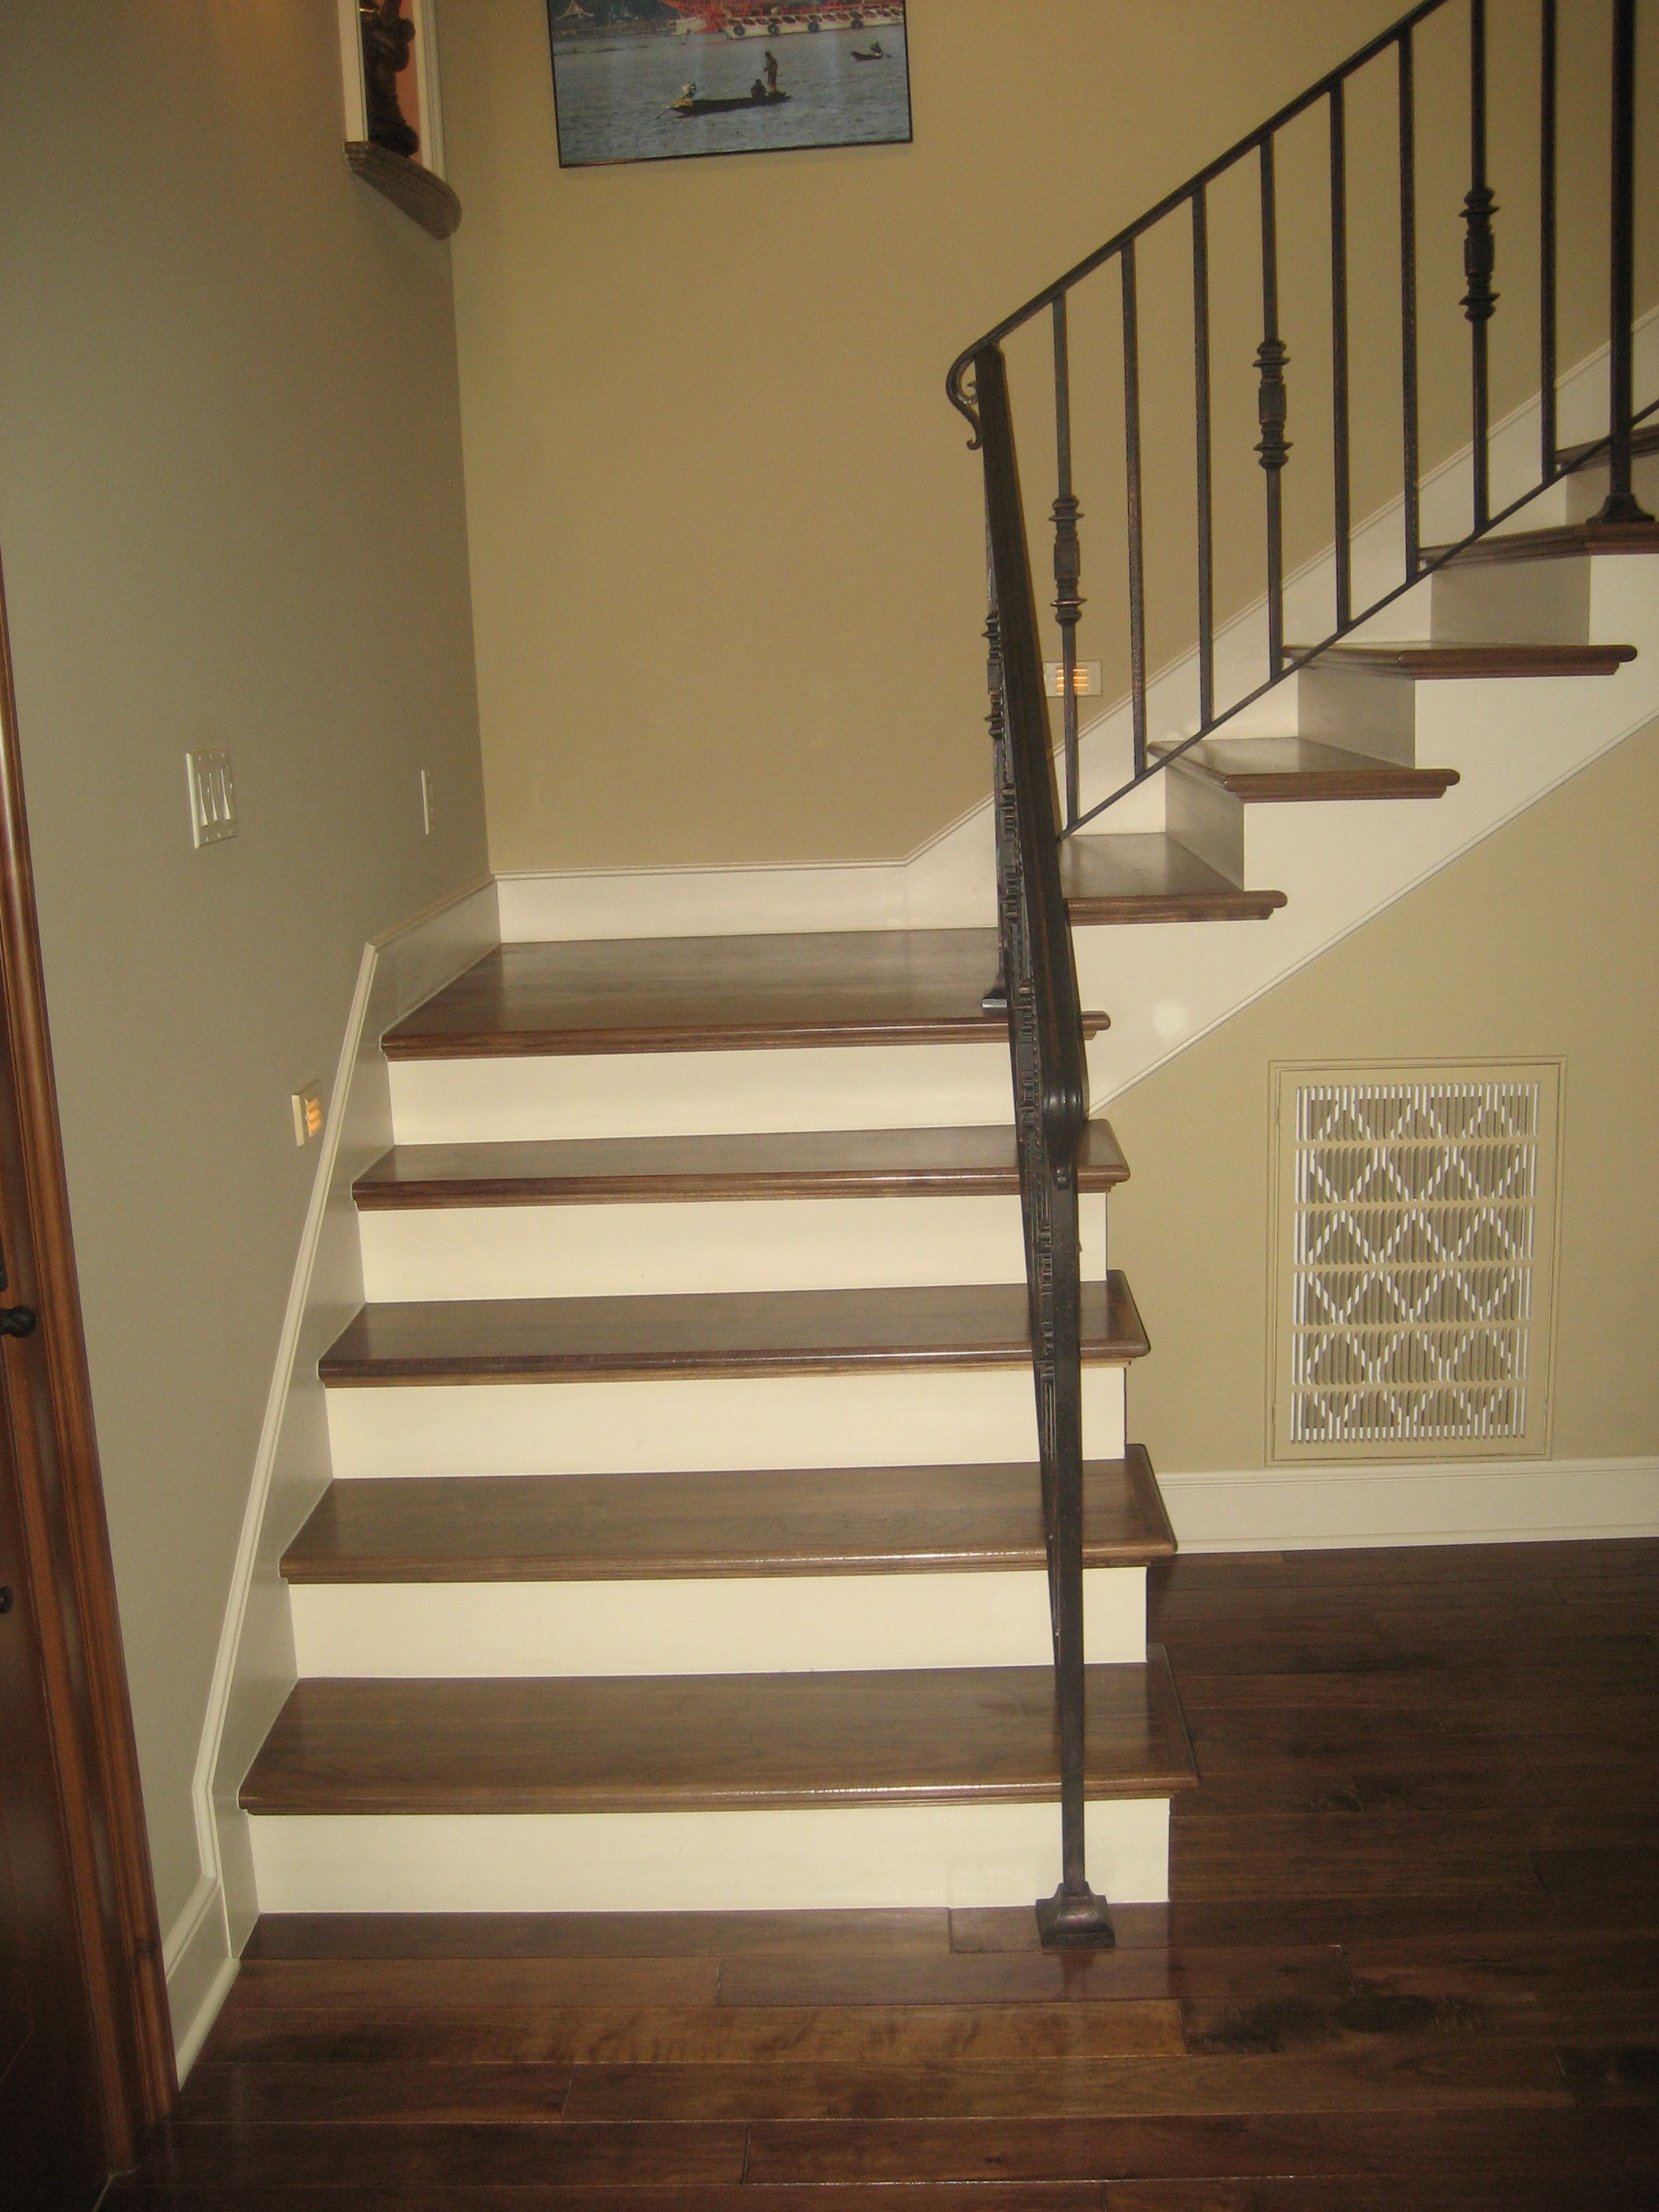 We Install Interior Wood Stairs, Wood And Wrought Iron Stair Railing Systems  And Exterior Railings.